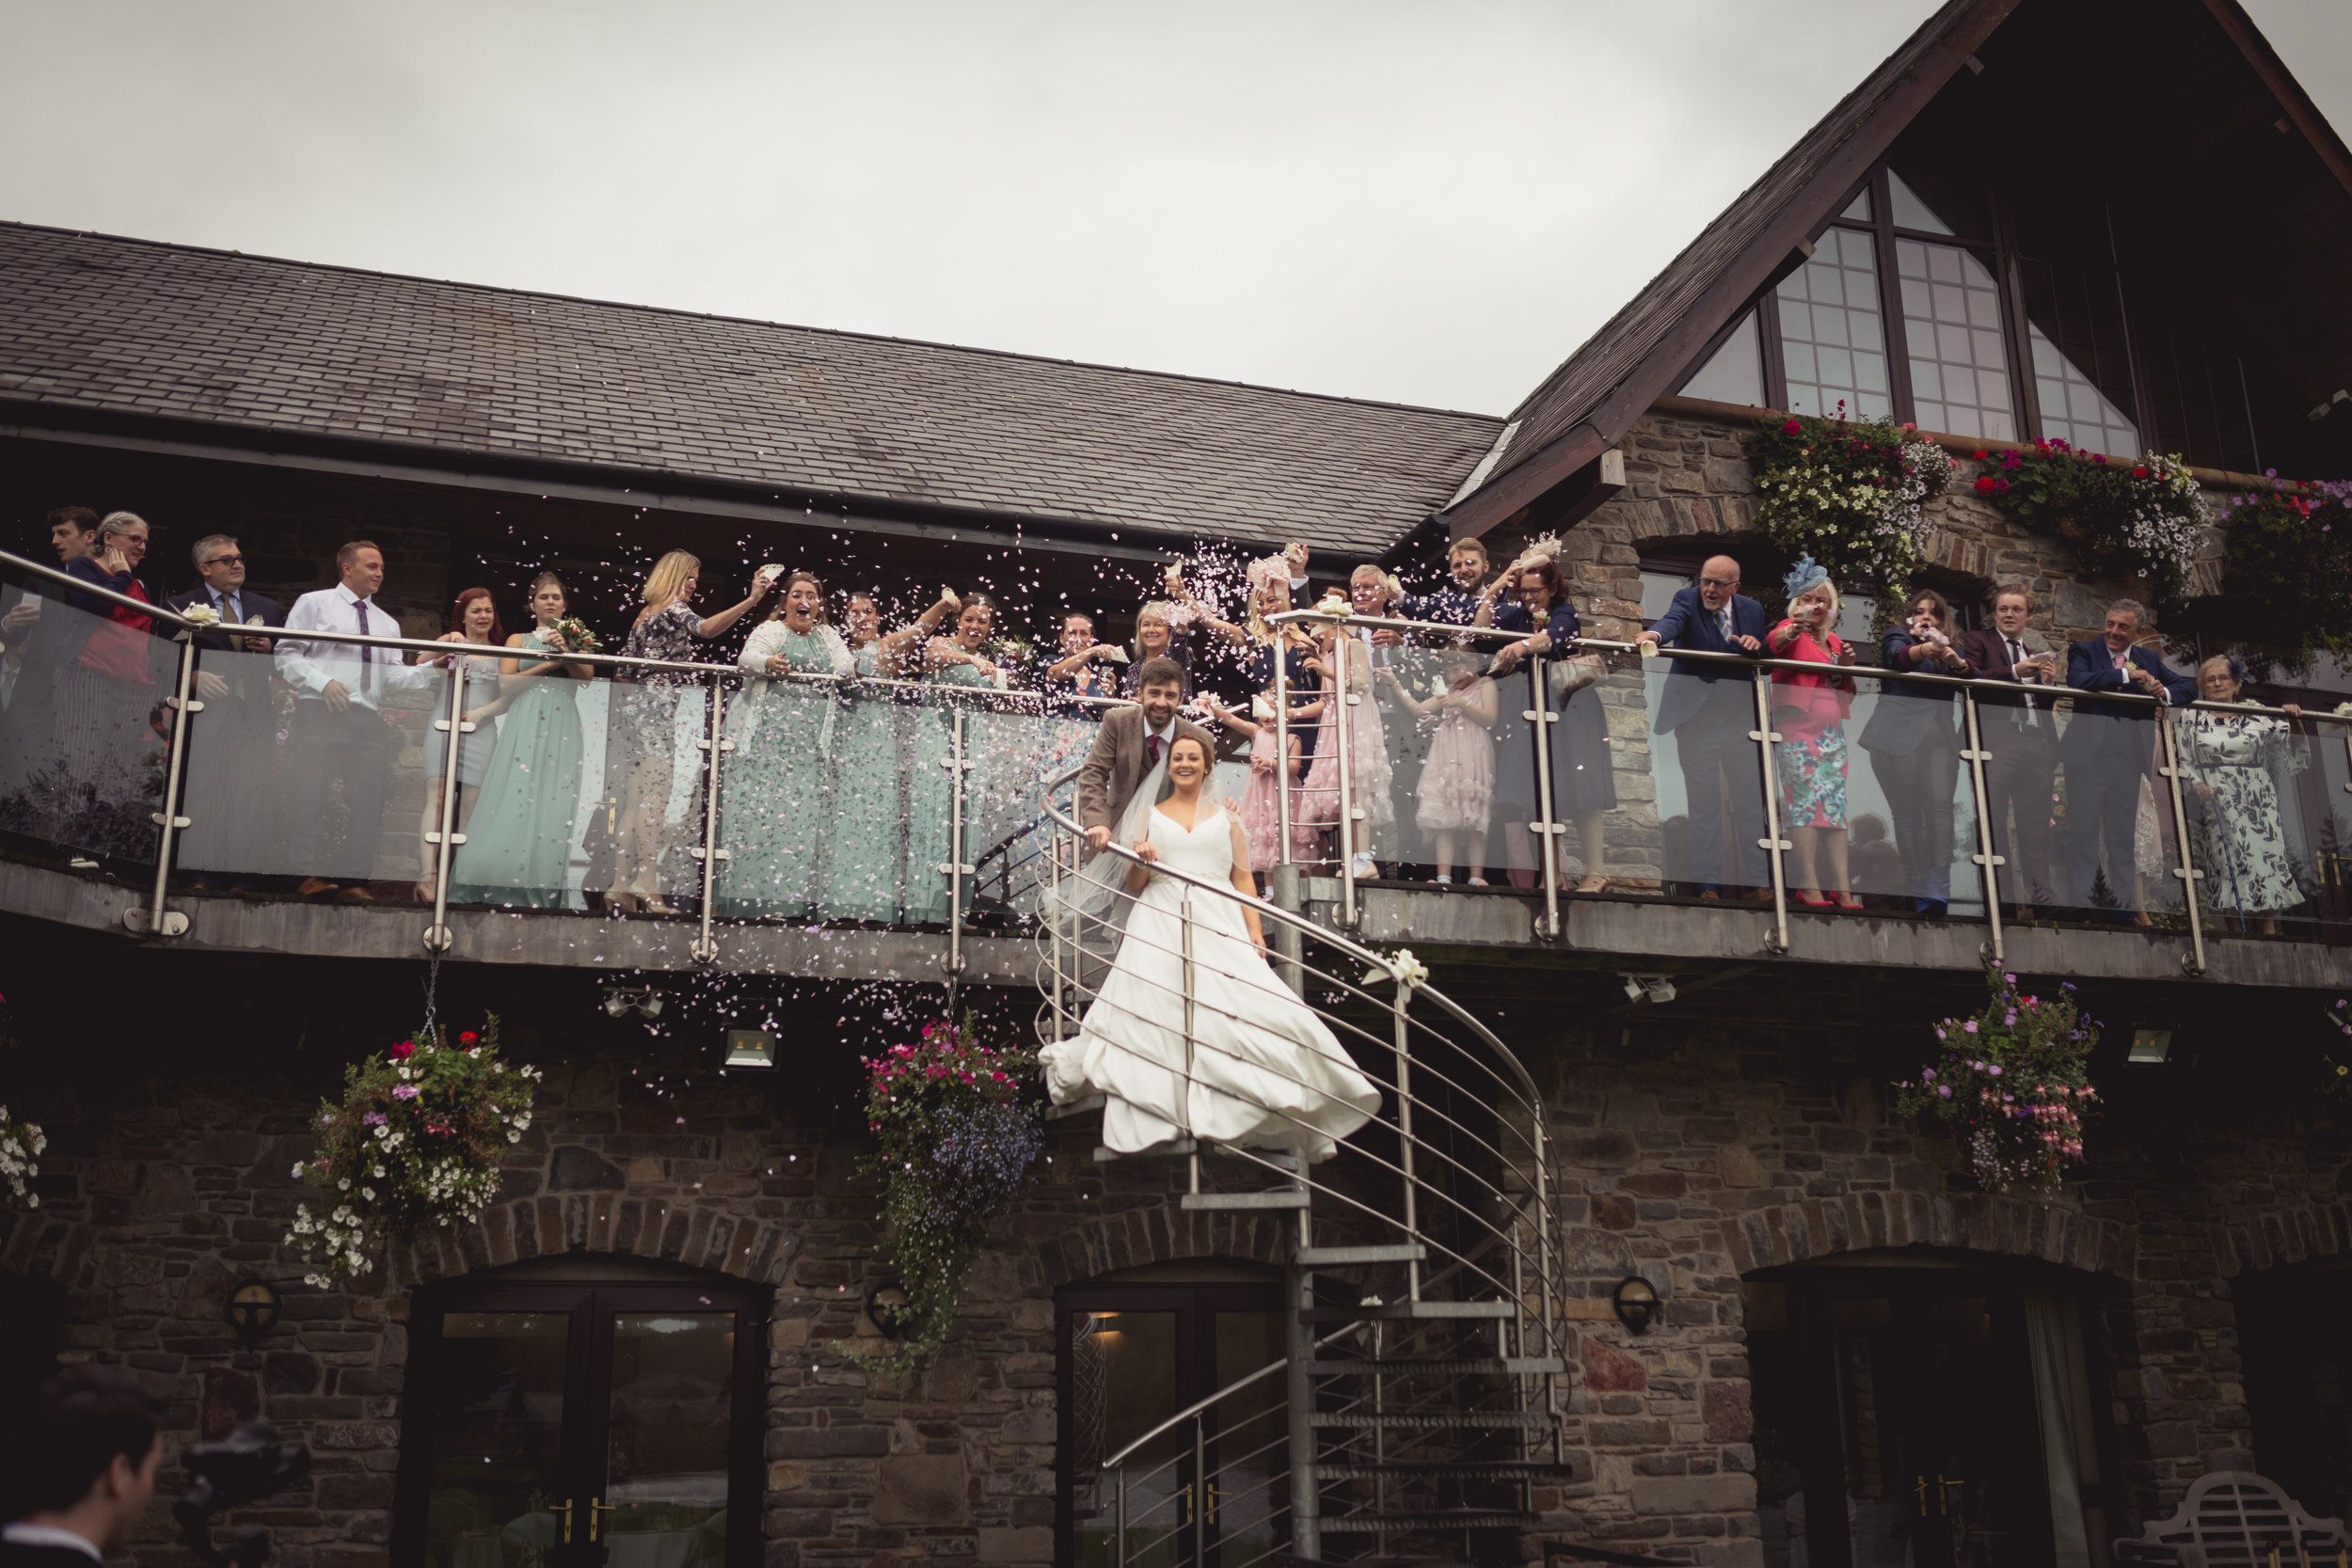 Bride and groom walking down a spiral staircase whilst the wedding guests throw confetti over them from above